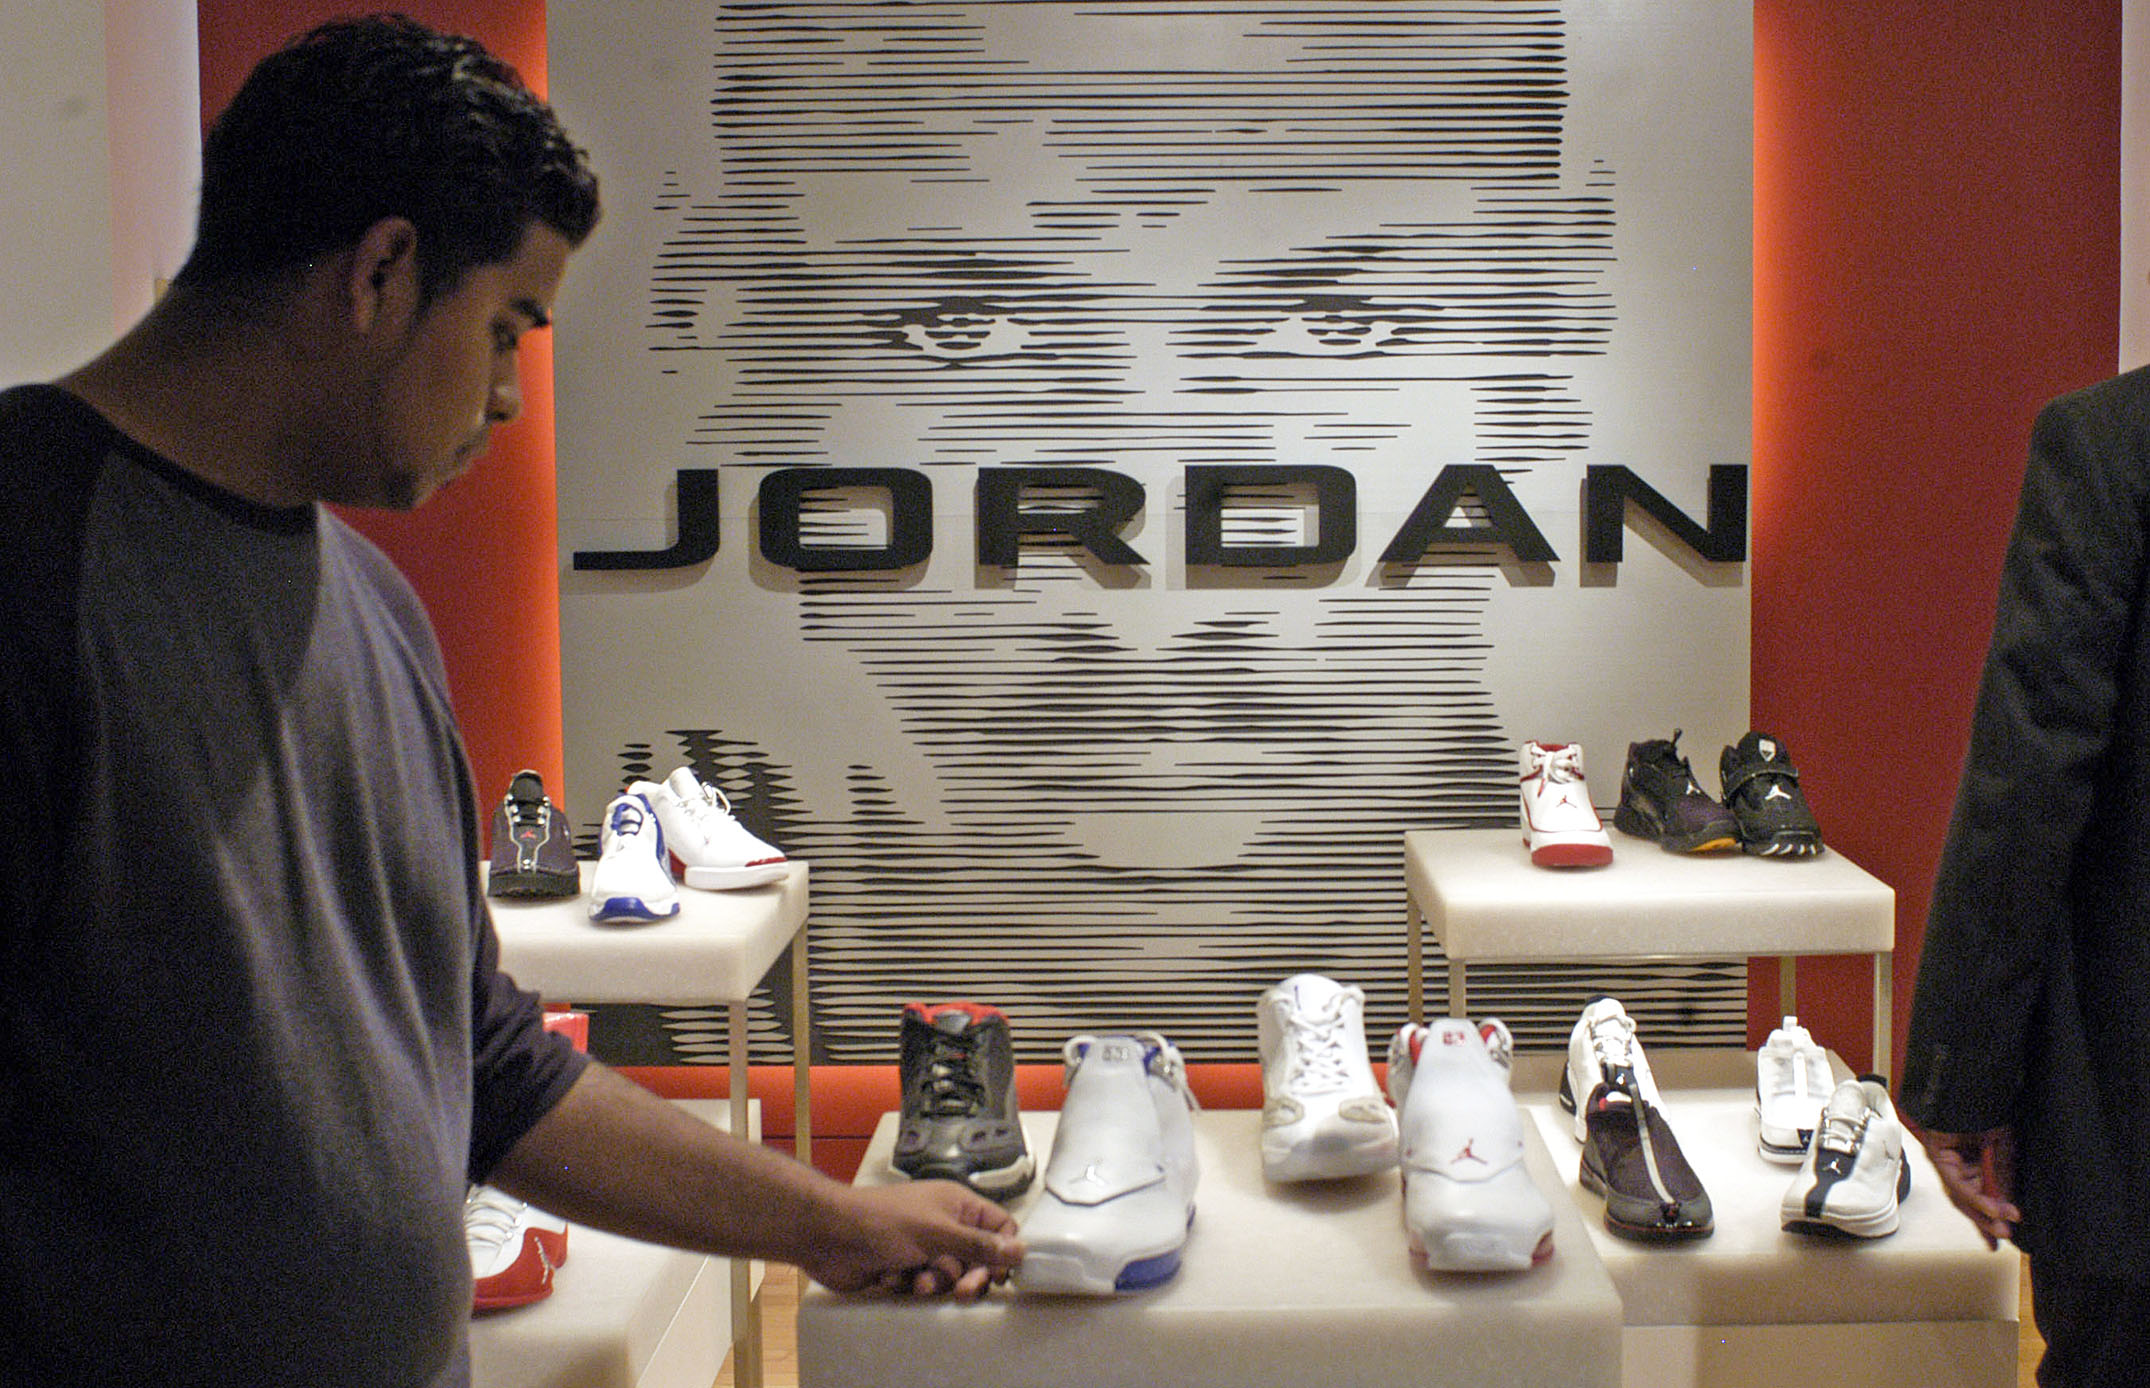 A man looks over Nike's Jordan line of athletic shoes at Niketown in New York.